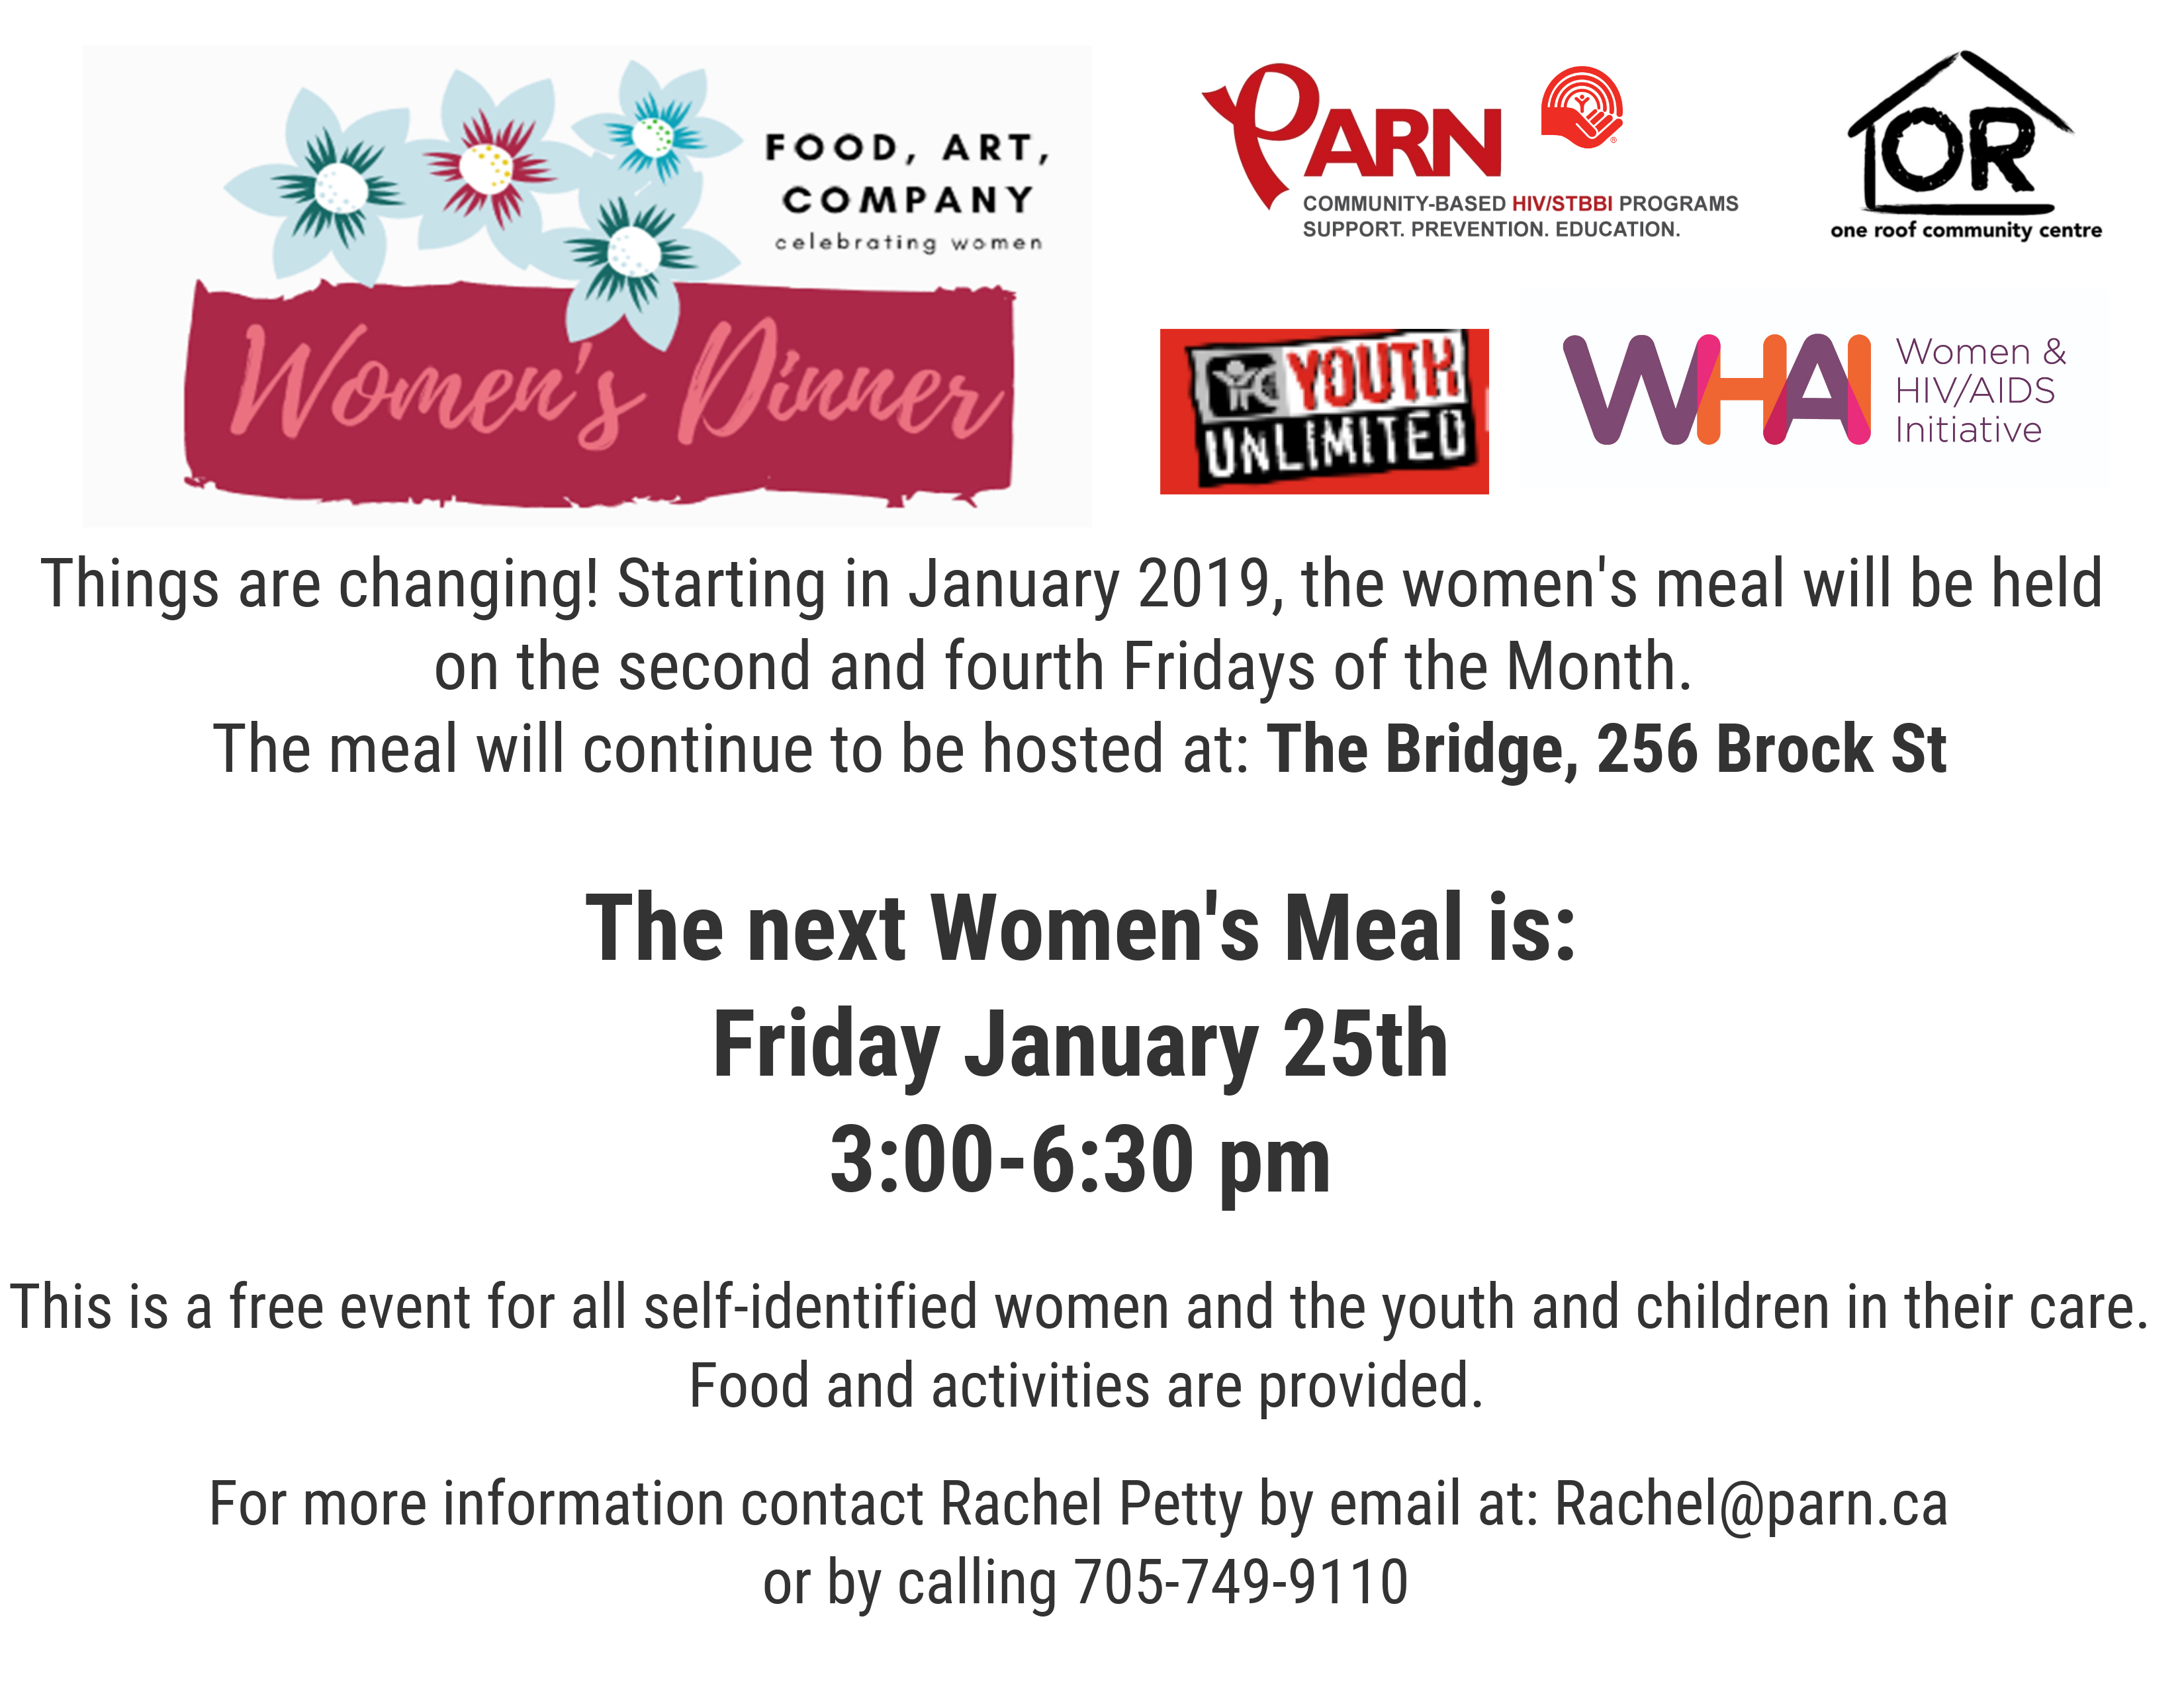 This image is a poster for a Women's Dinner happening at Fleming Park on Friday, January 25 from 3:00 pm to 6:30 pm. This is a free event for all self-identified women and the youth and children in their care. Food and activities are provided. For more information contact Brittany Cameron by email at brittany@parn.ca or by calling 705-749-9110.